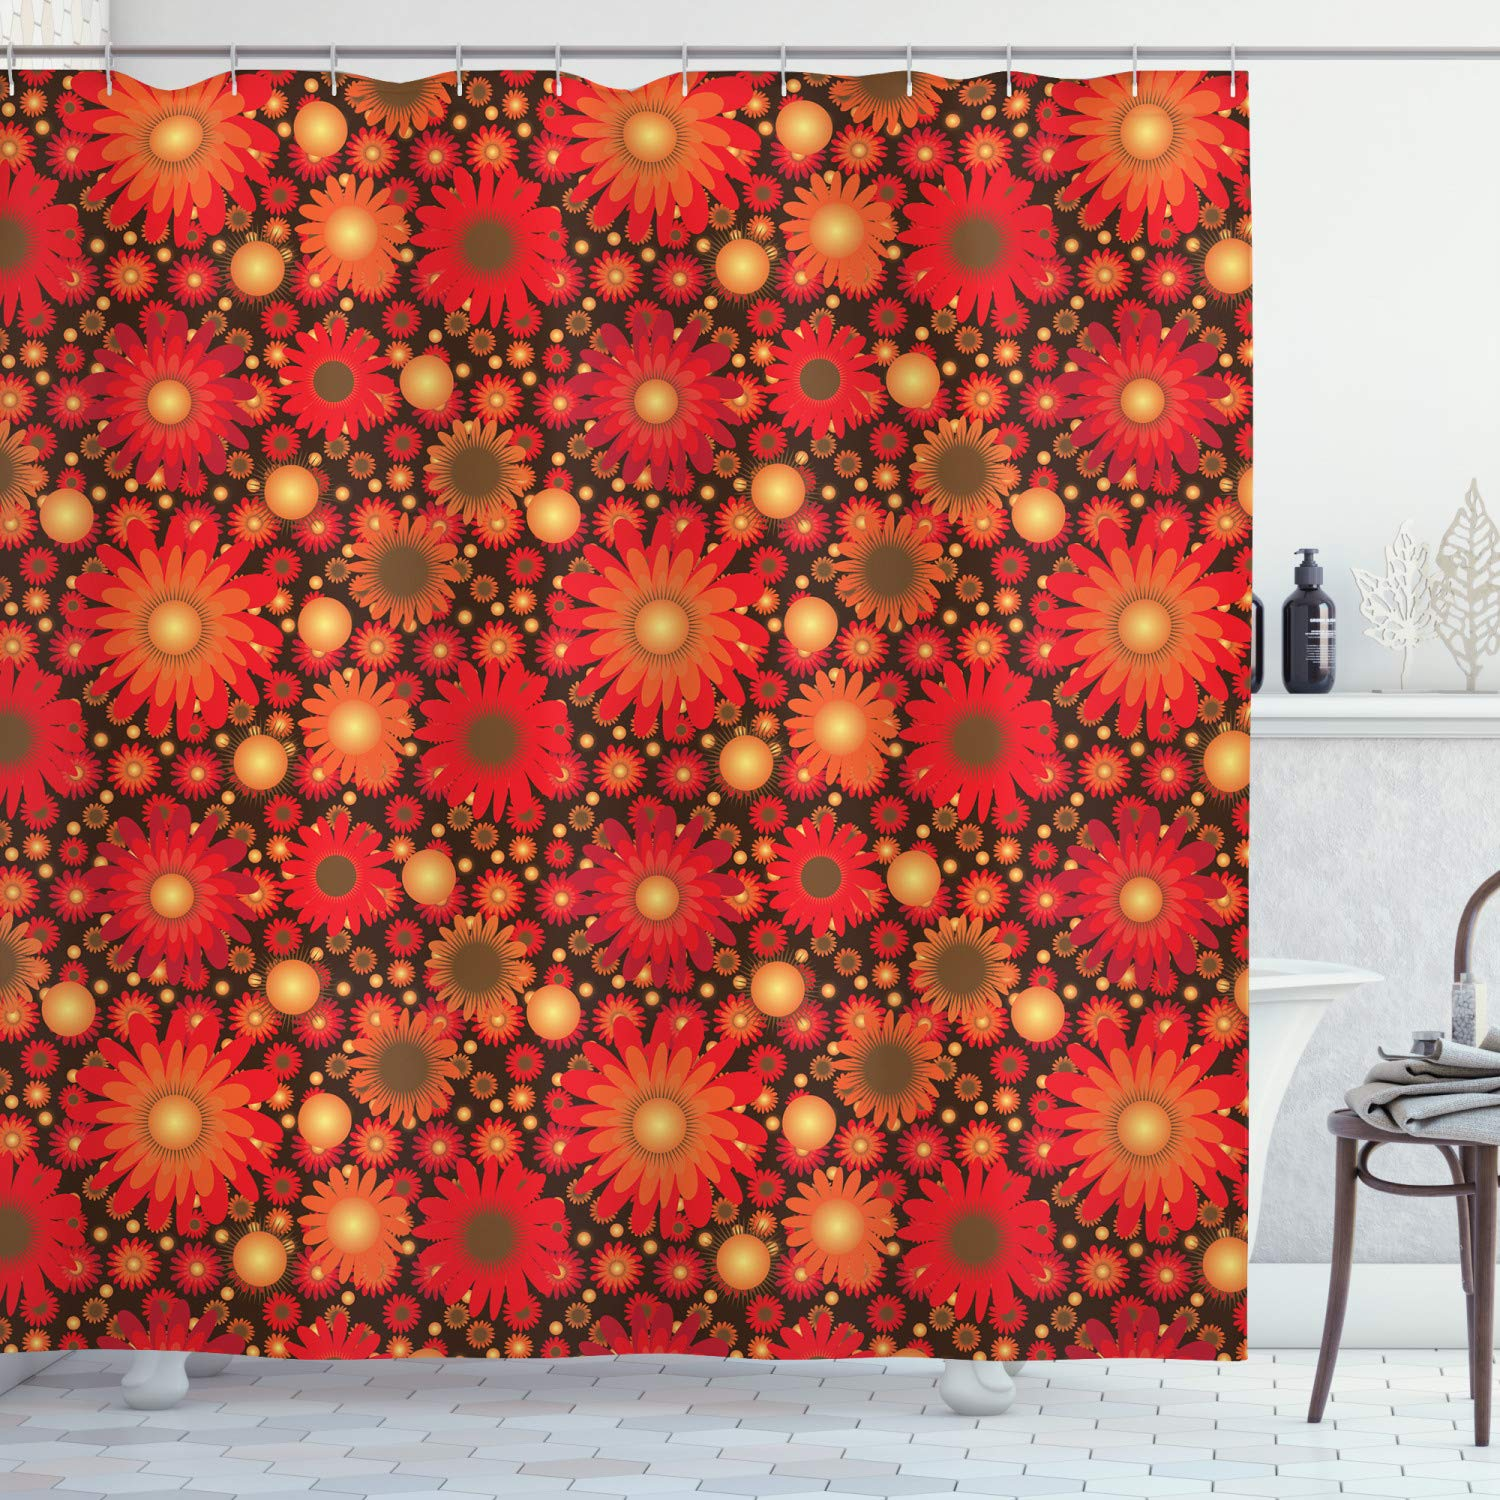 """Ambesonne Floral Shower Curtain, Vivid Floral Colored Botanical Composition with Gerbera Daisies, Cloth Fabric Bathroom Decor Set with Hooks, 84"""" Long Extra, Dark Green"""